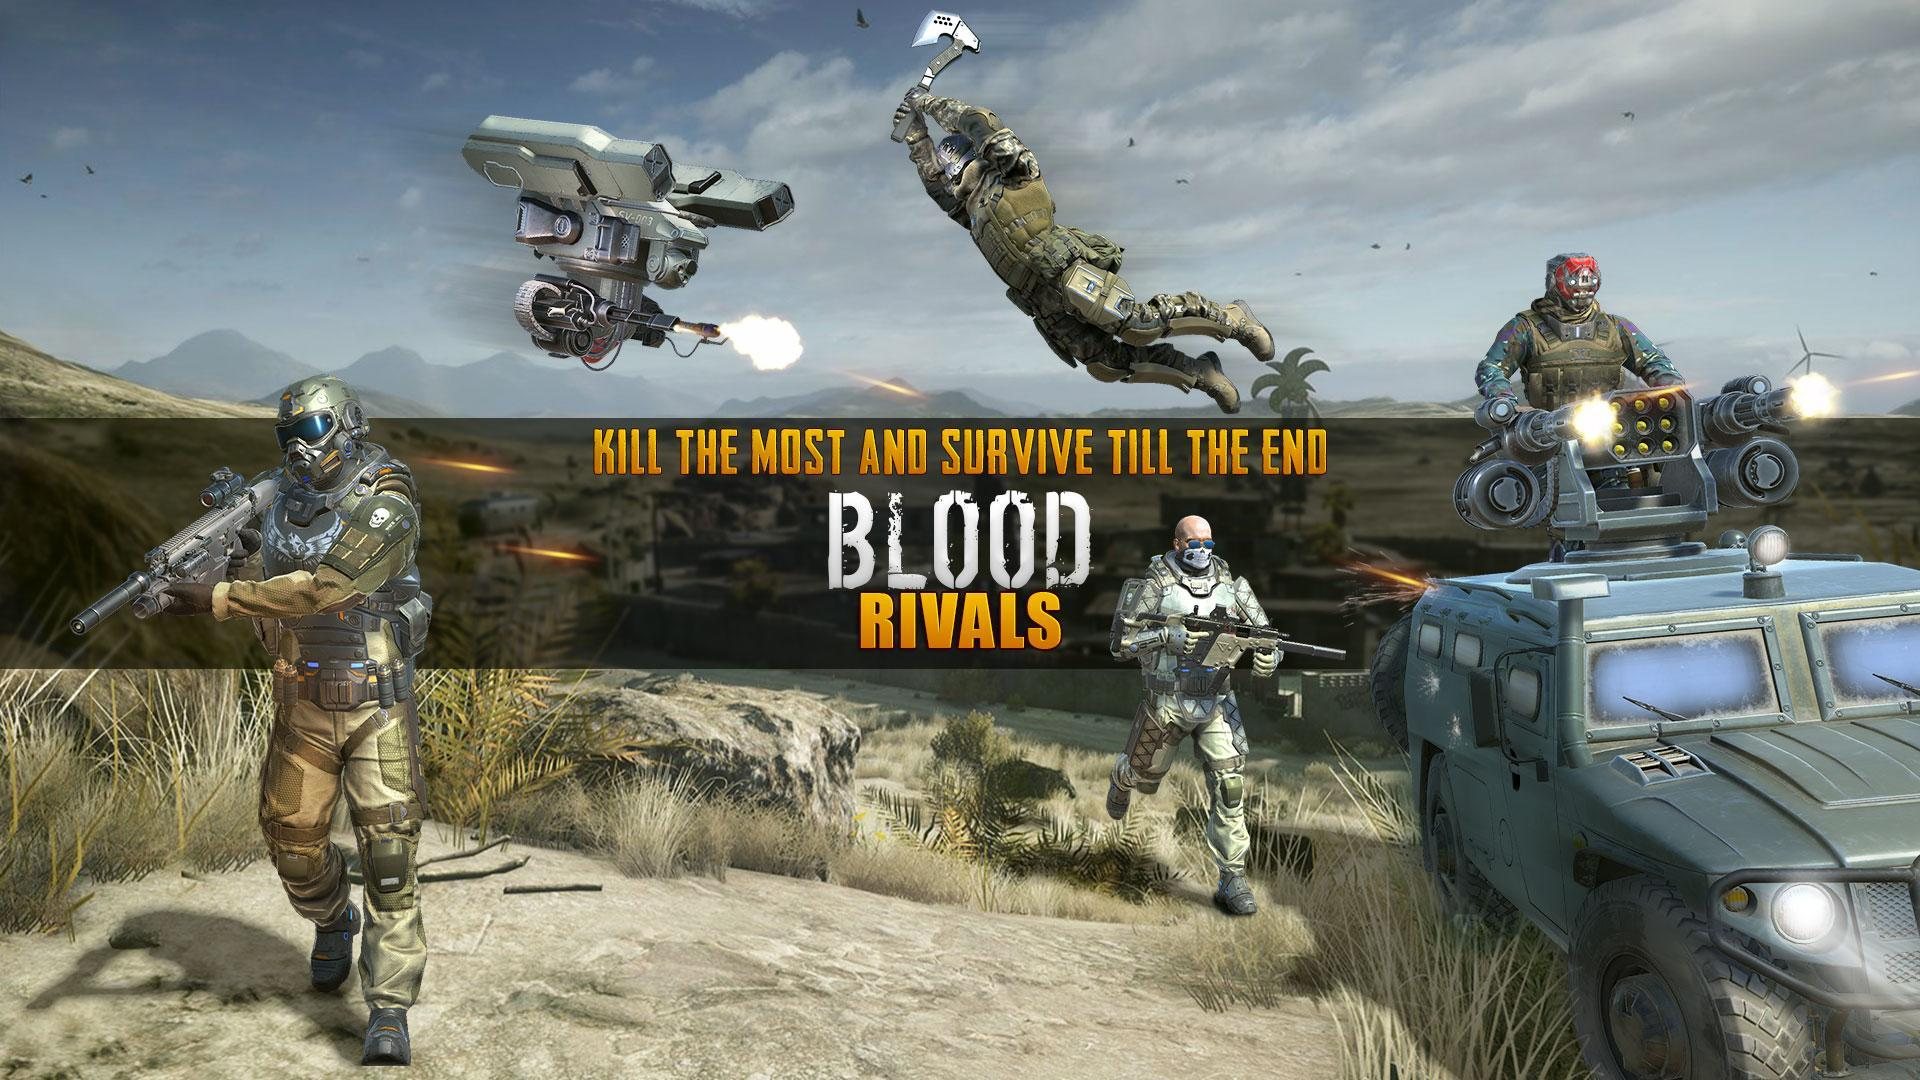 Blood Rivals for Android - APK Download